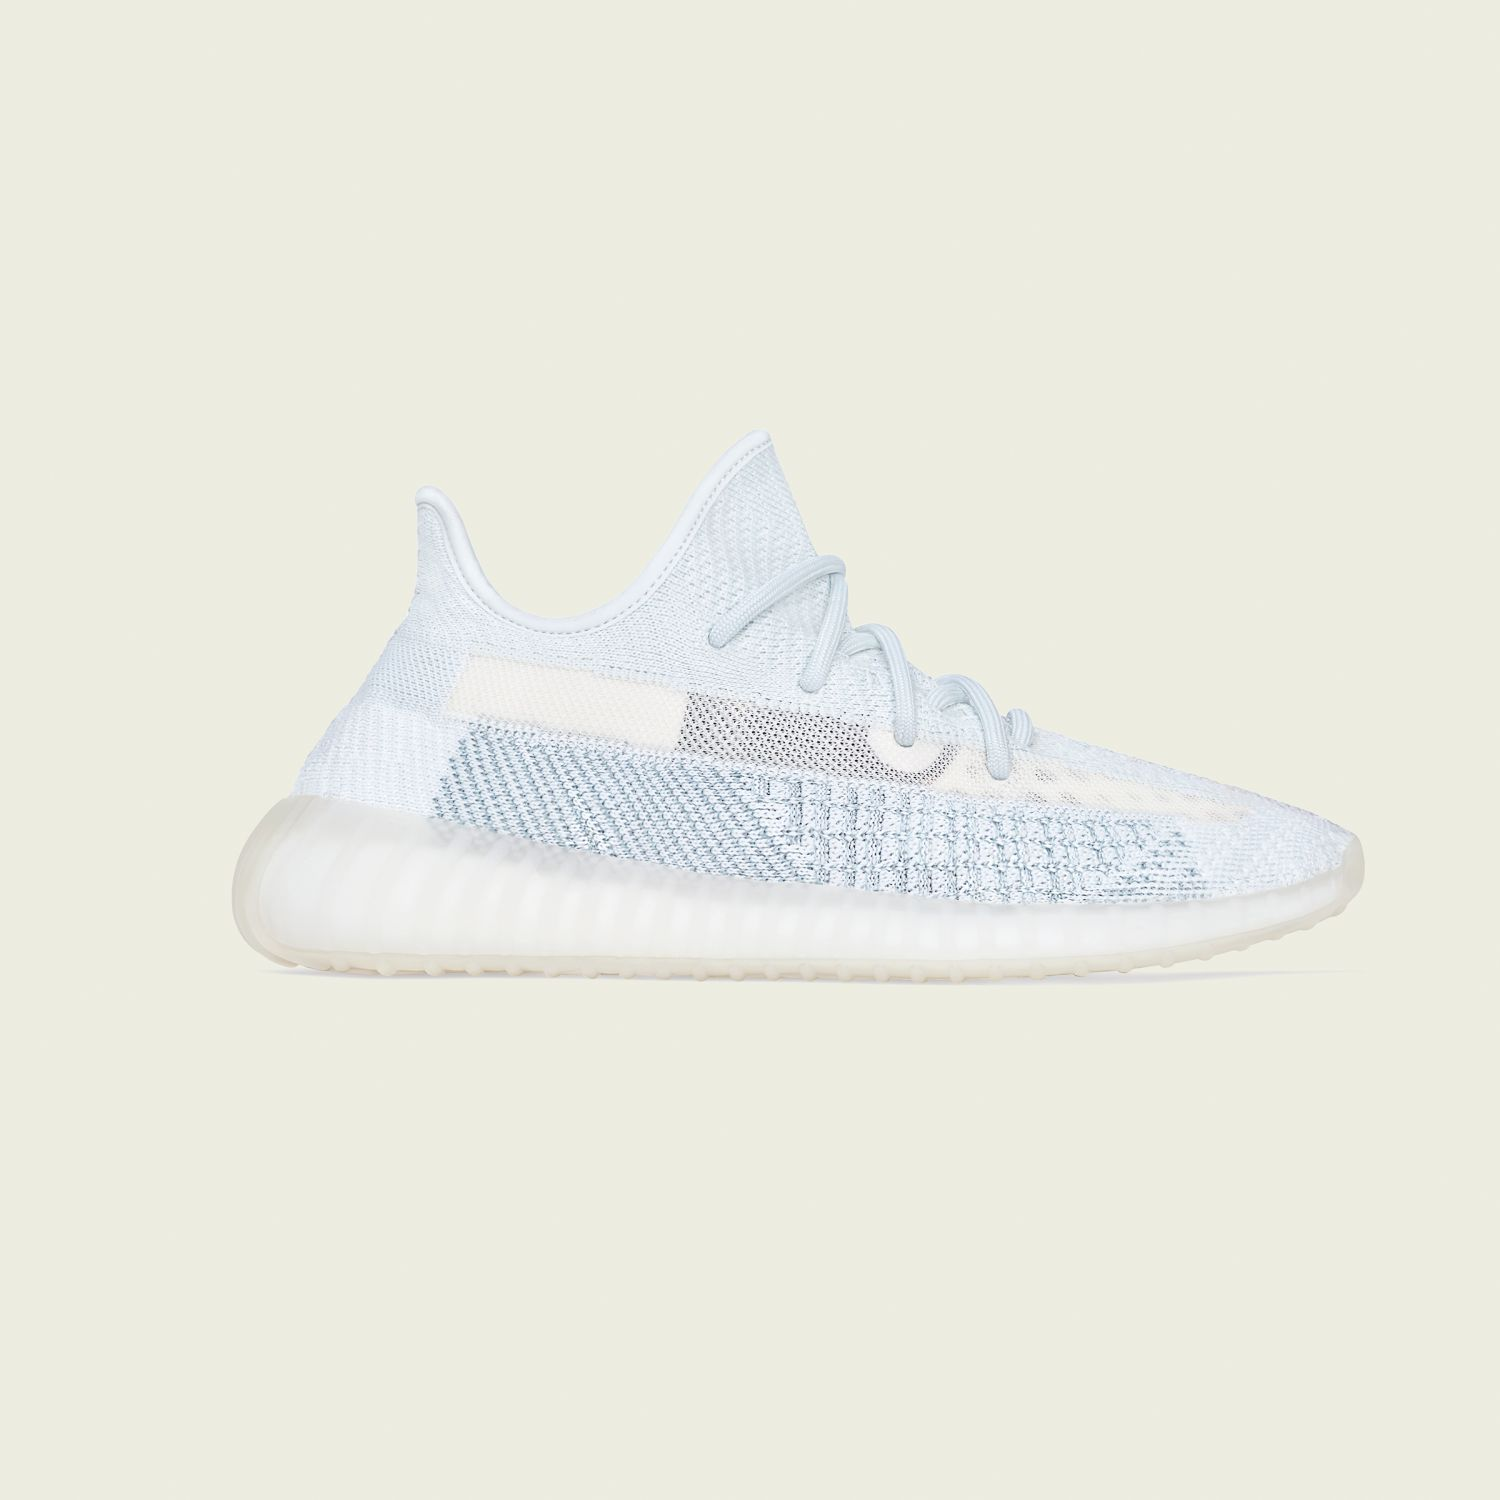 Yeezy Boost 350 V2 Cloud White (Non-Reflective) [1]